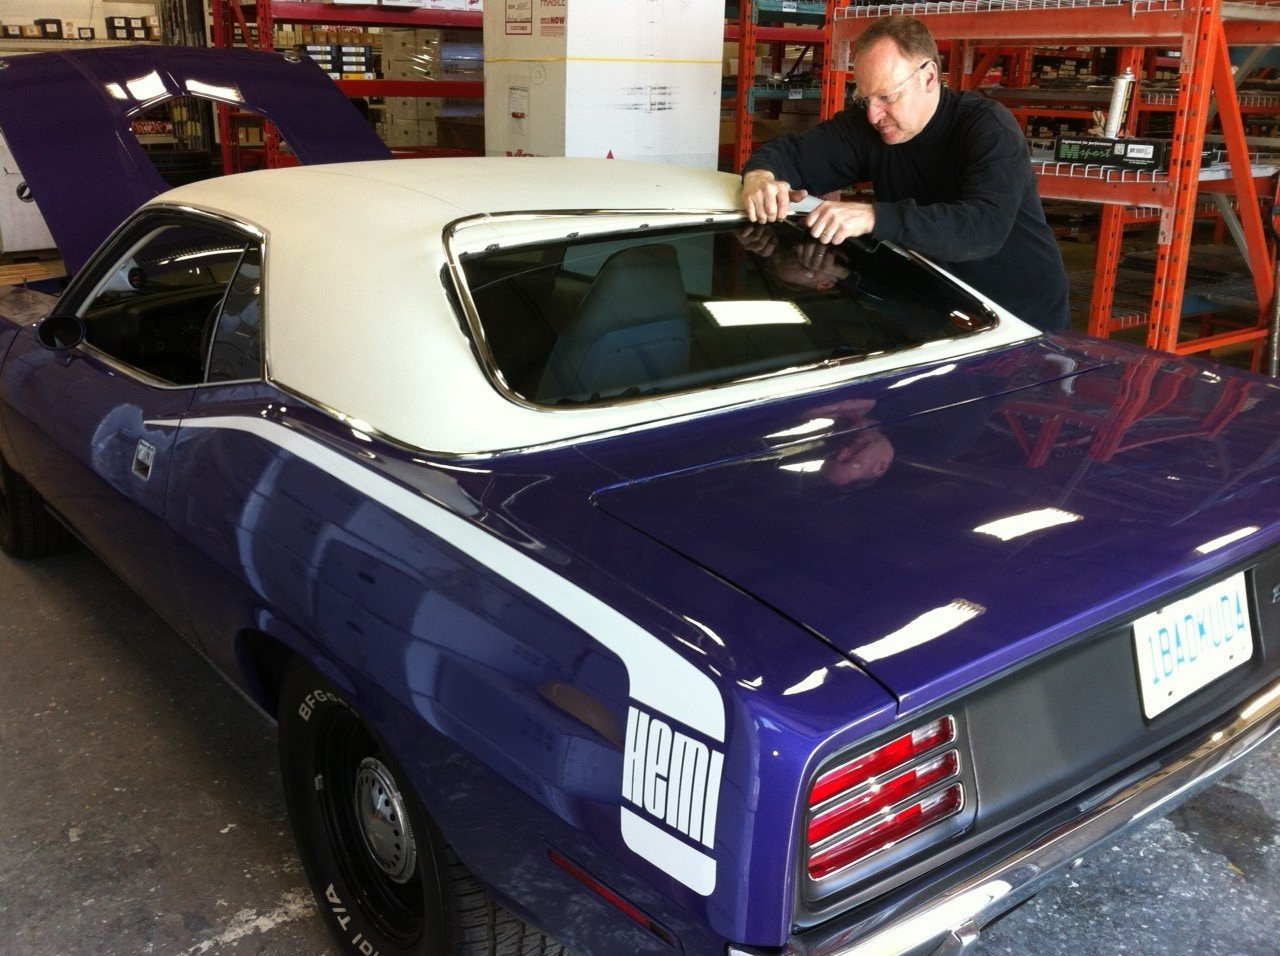 Replacement of back window with chrome trim surround on this classic 1971 Cuda.